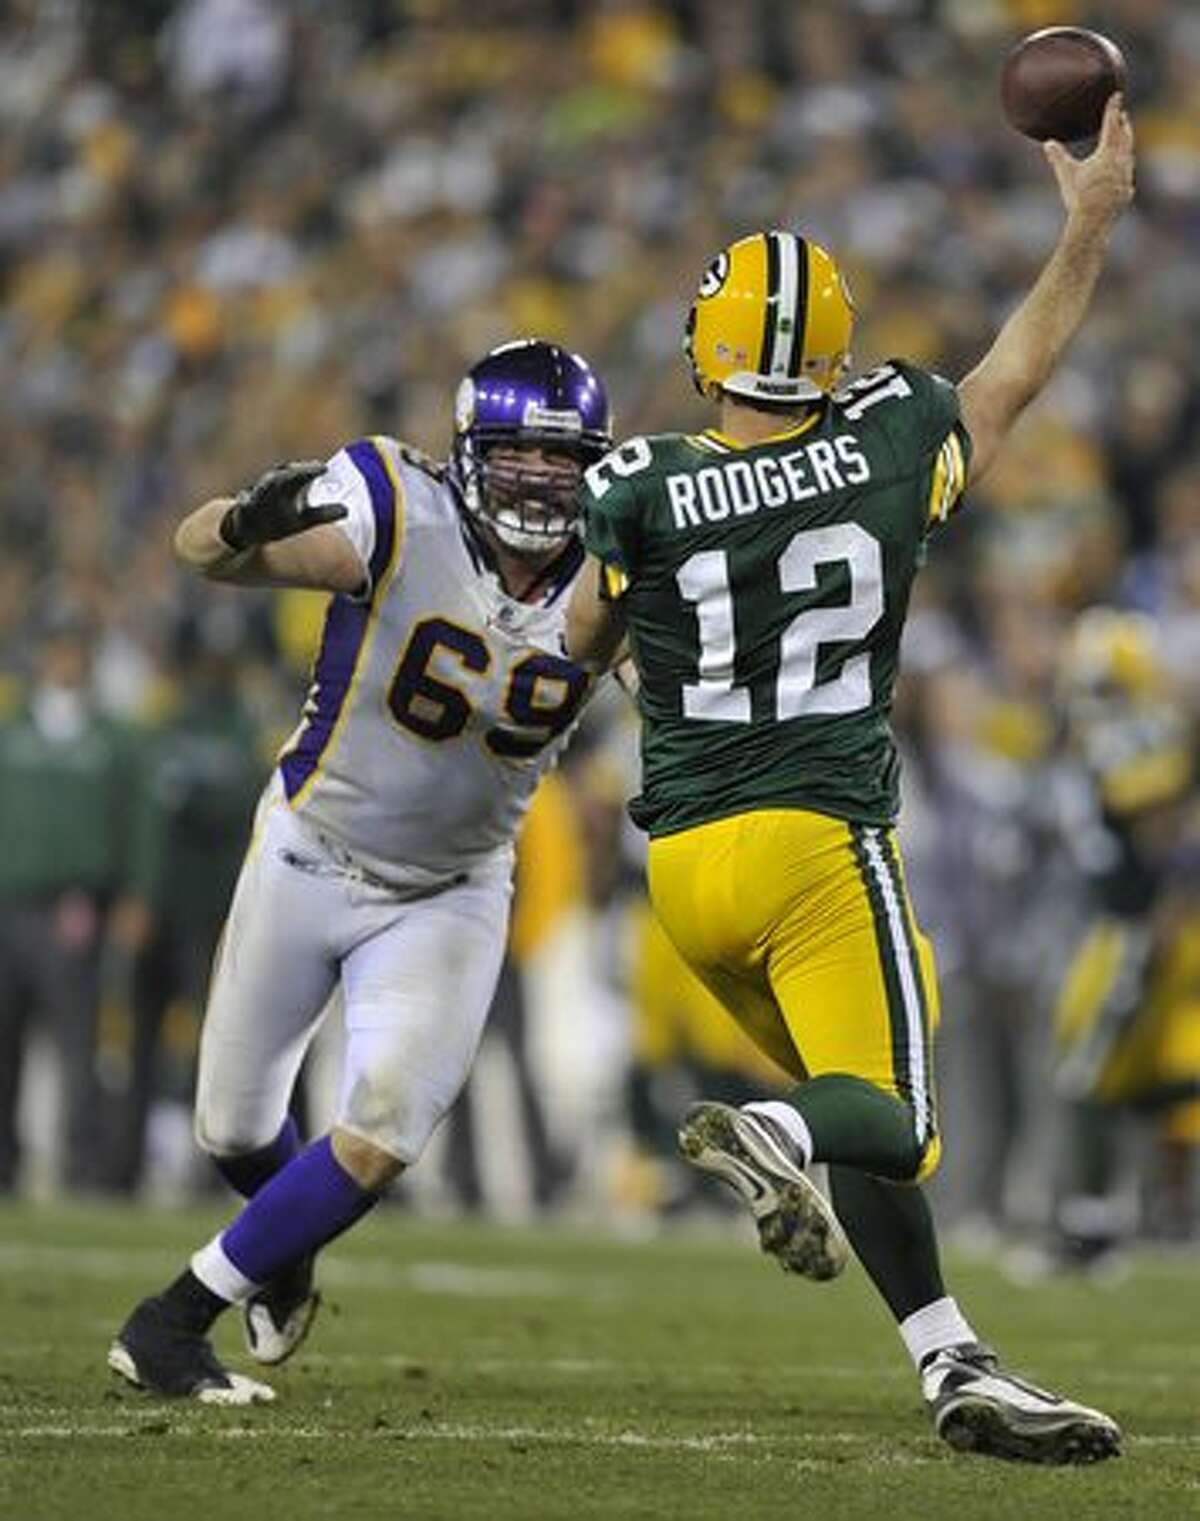 No. 7: Green Bay Packers quarterback Aaron Rodgers, shown here throwing a pass as Minnesota Viking Jared Allen bears down on him on October 24, 2010 at Lambeau Field, in Green Bay, Wisc.